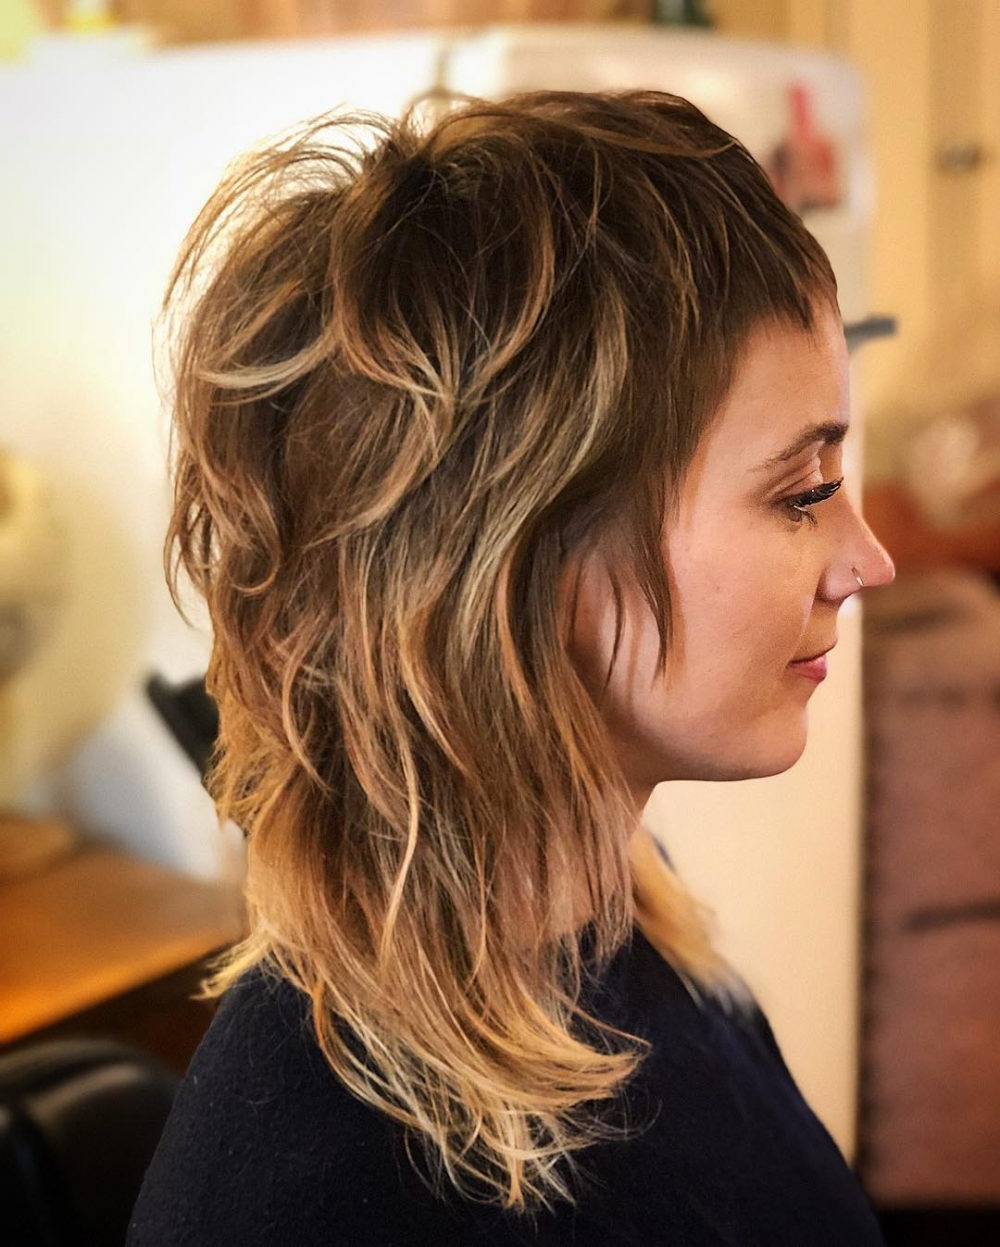 34 Short Bangs That Are Totally Hot In 2019 For Preferred Short Bangs Medium Hairstyles (Gallery 15 of 20)